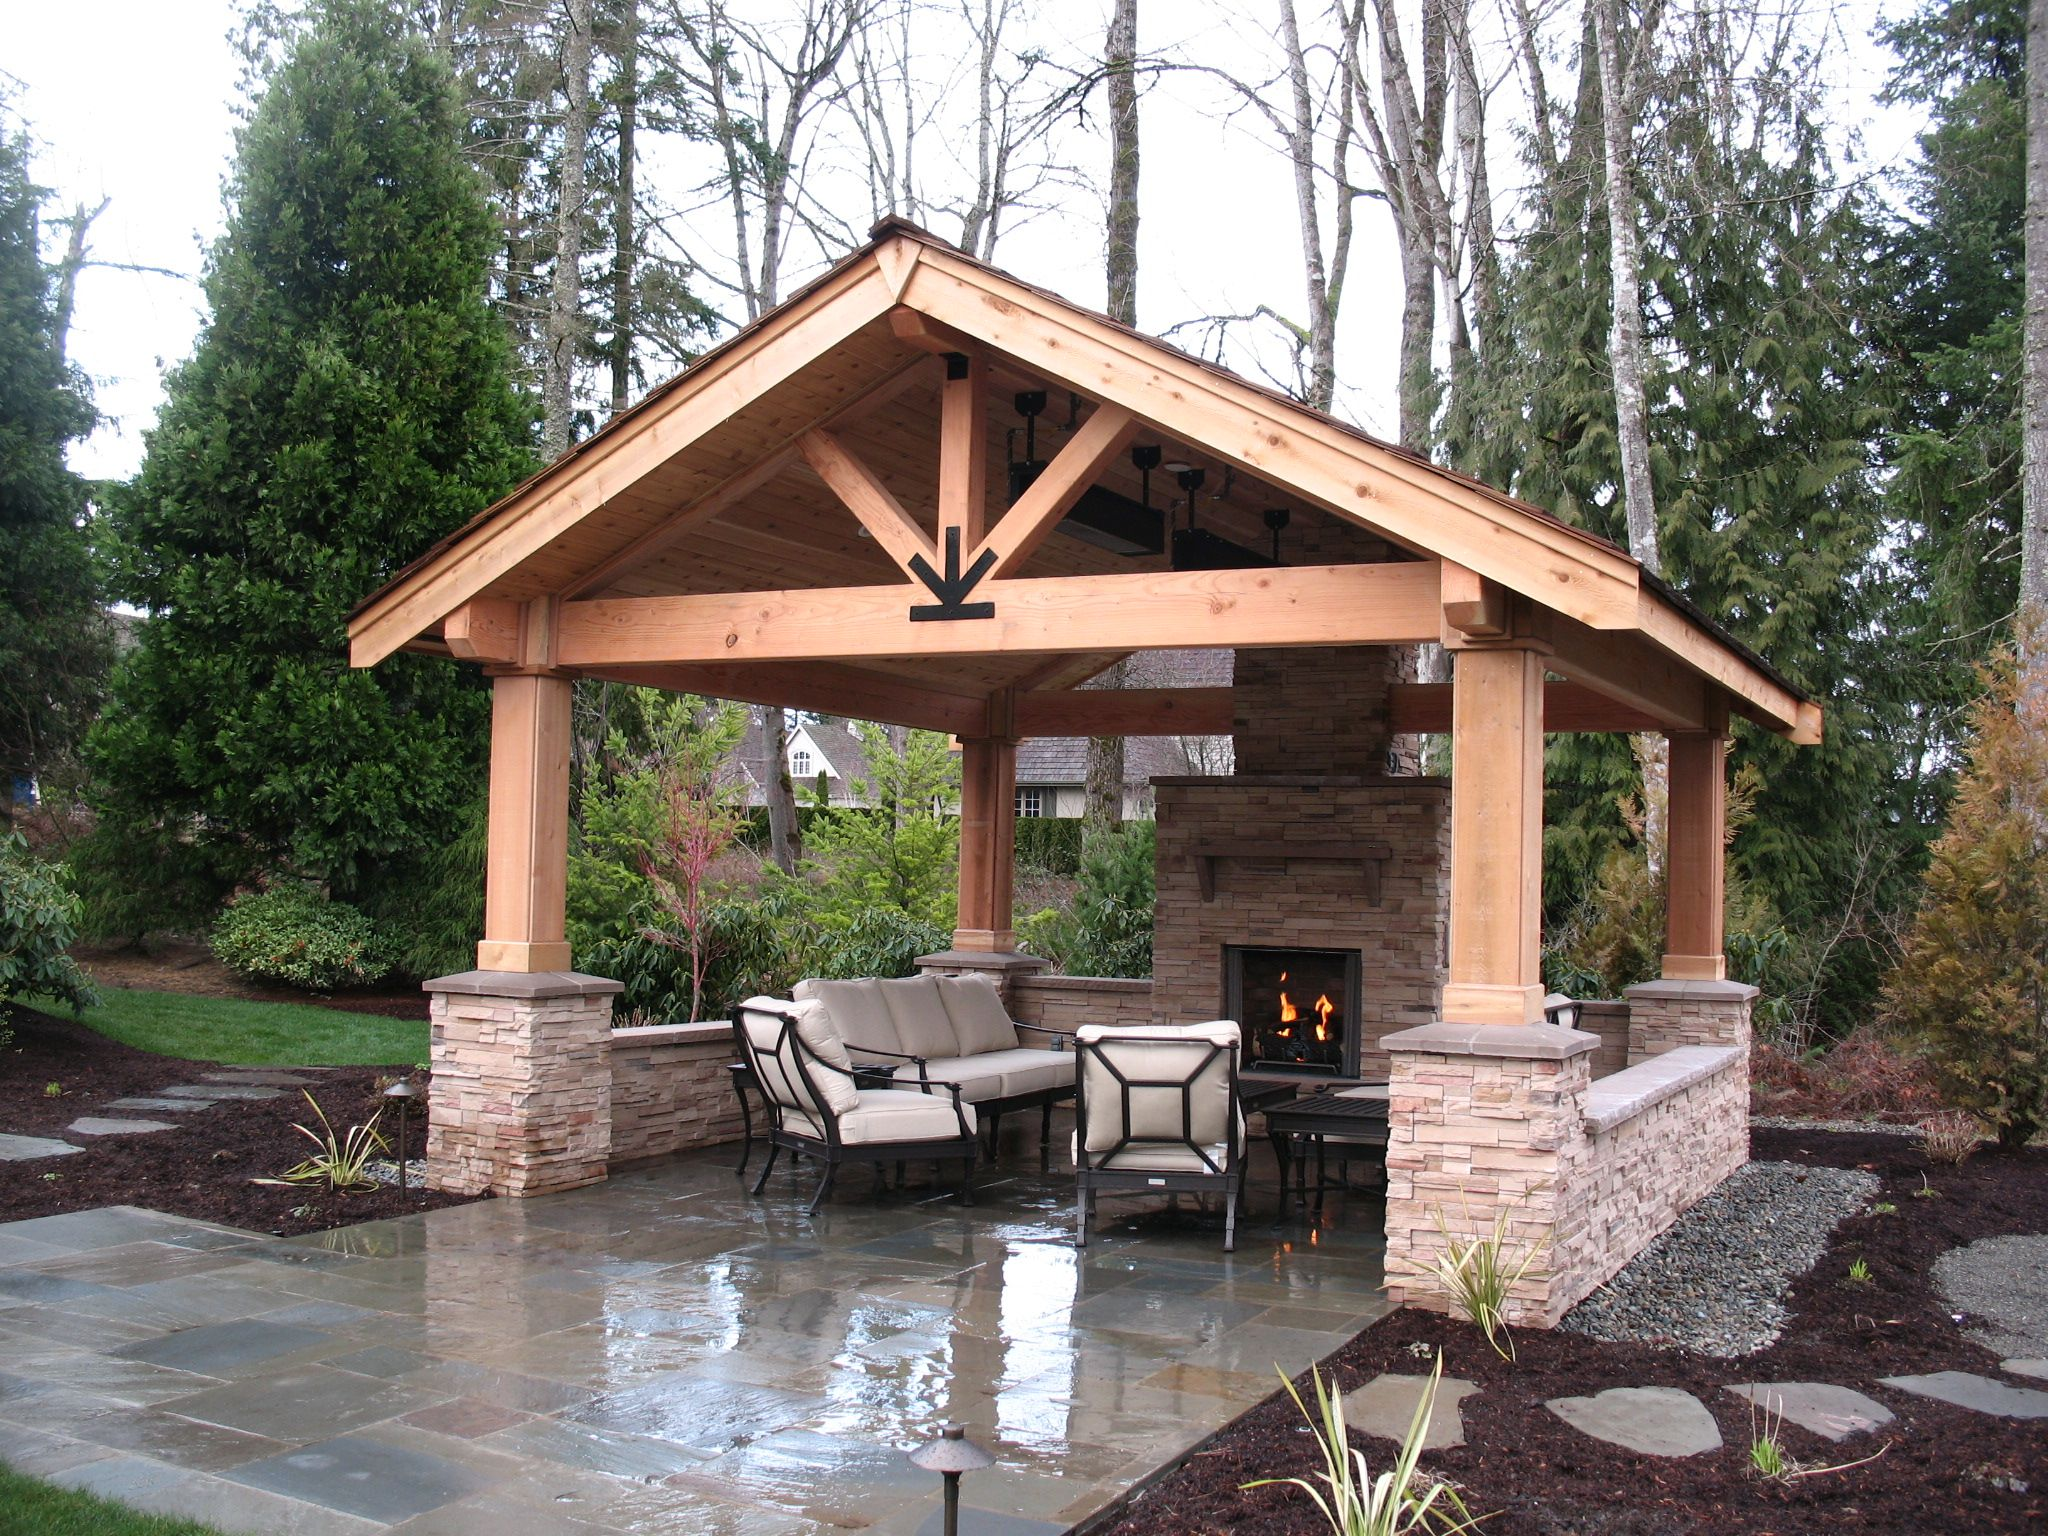 Firepits, Outdoor Fireplaces, Wood Fired Brick Ovens, Campfires And Outdoor  Kitchens! | Pinterest | Backyard, Patios U2026